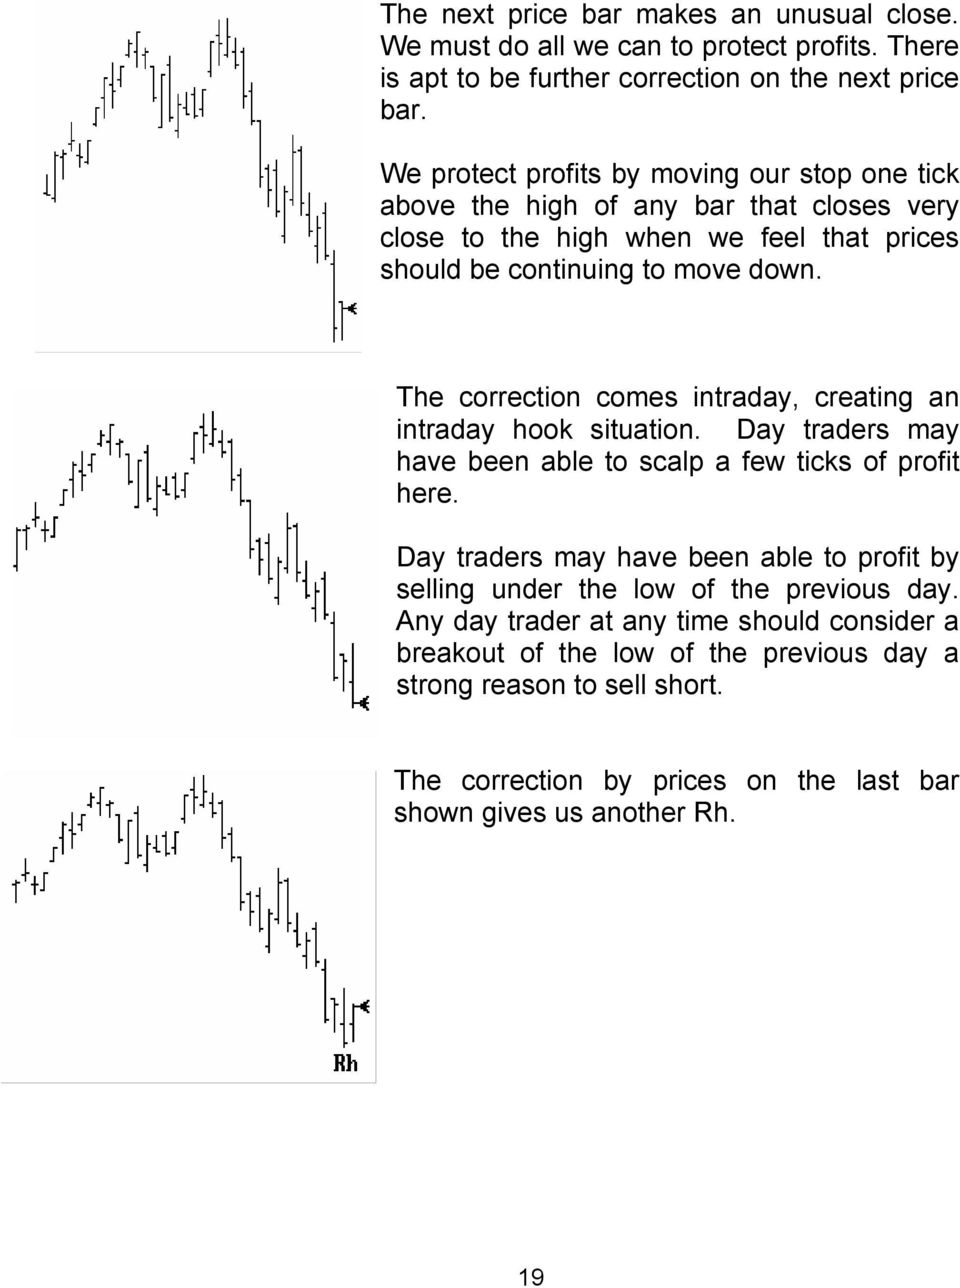 The correction comes intraday, creating an intraday hook situation. Day traders may have been able to scalp a few ticks of profit here.